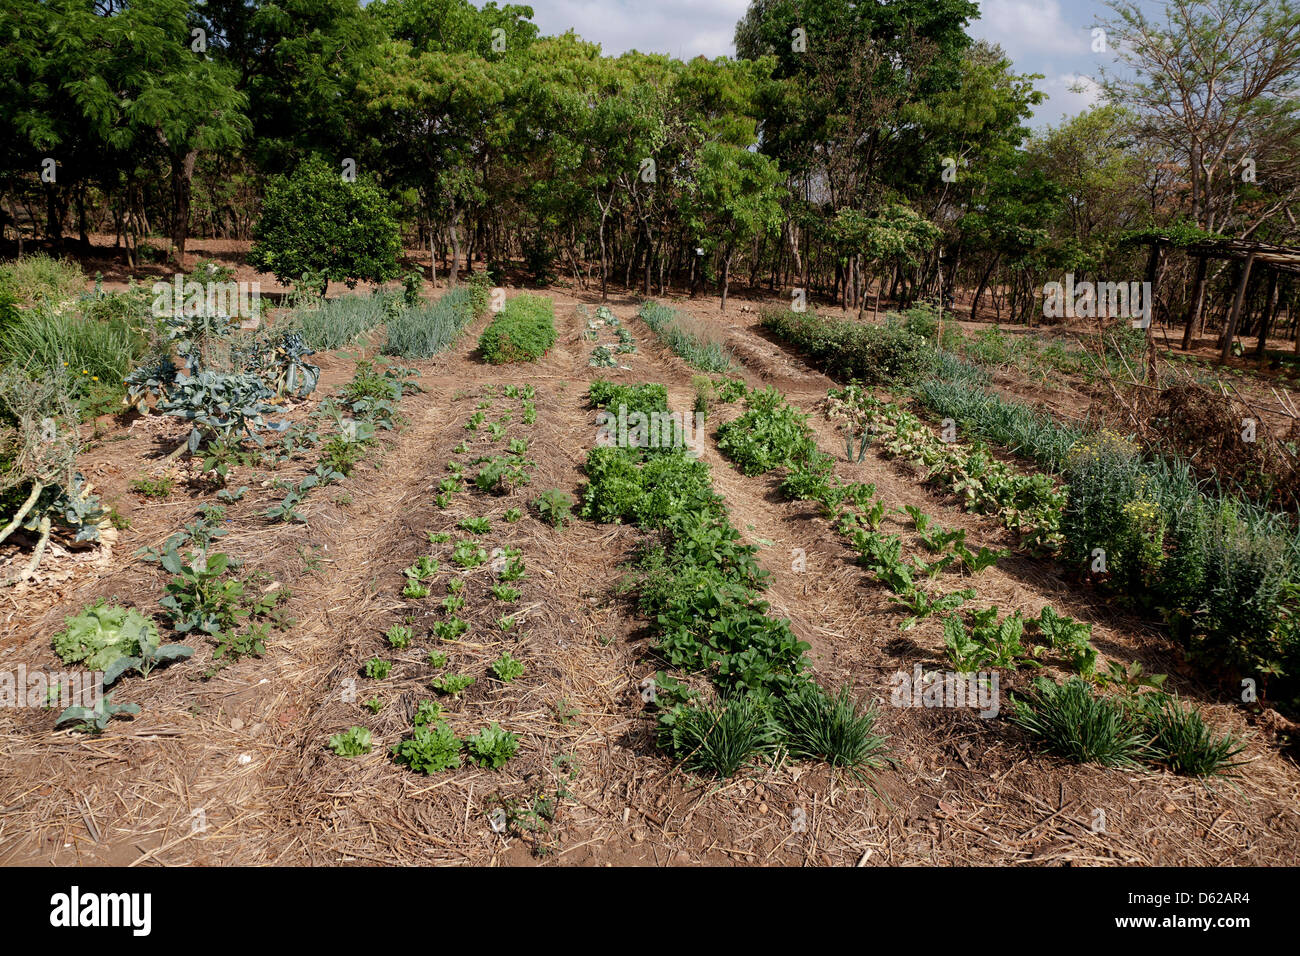 vegetable garden depicting companion planting and the use of